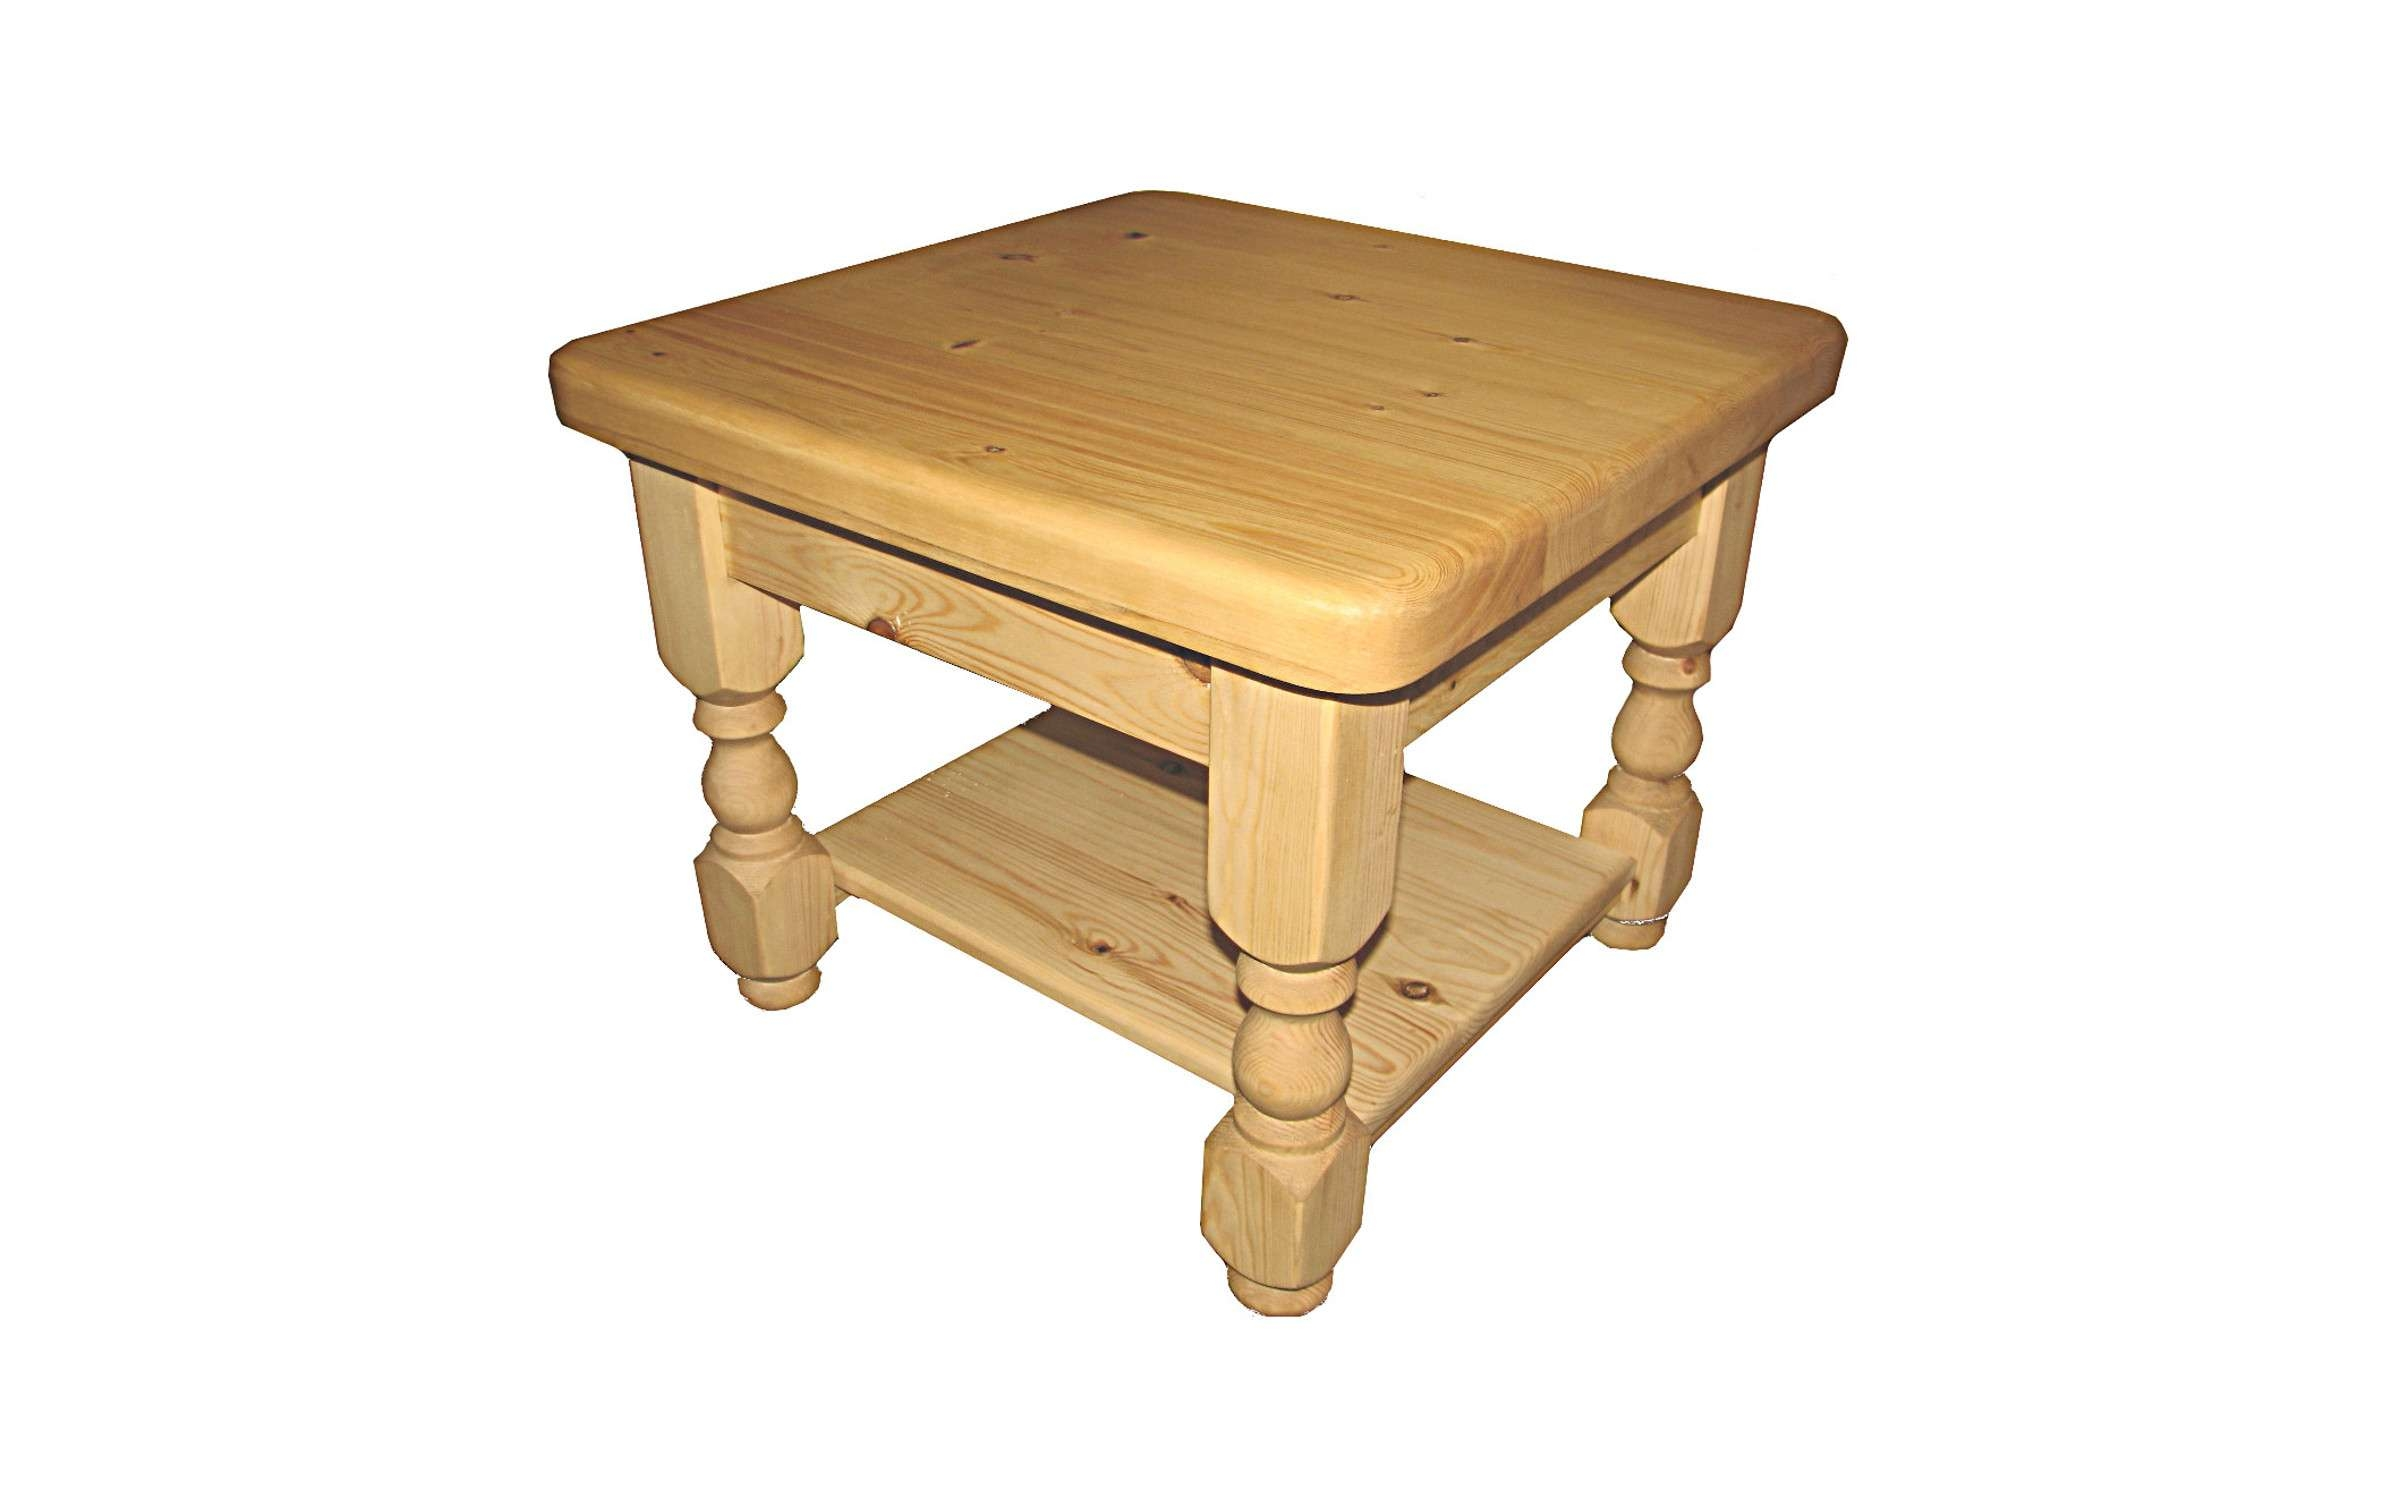 Famous Pine Coffee Tables With Storage Throughout Drawers : Coffee Tables Kerris Farmhouse Pine 30 Square With Shelf (View 11 of 20)